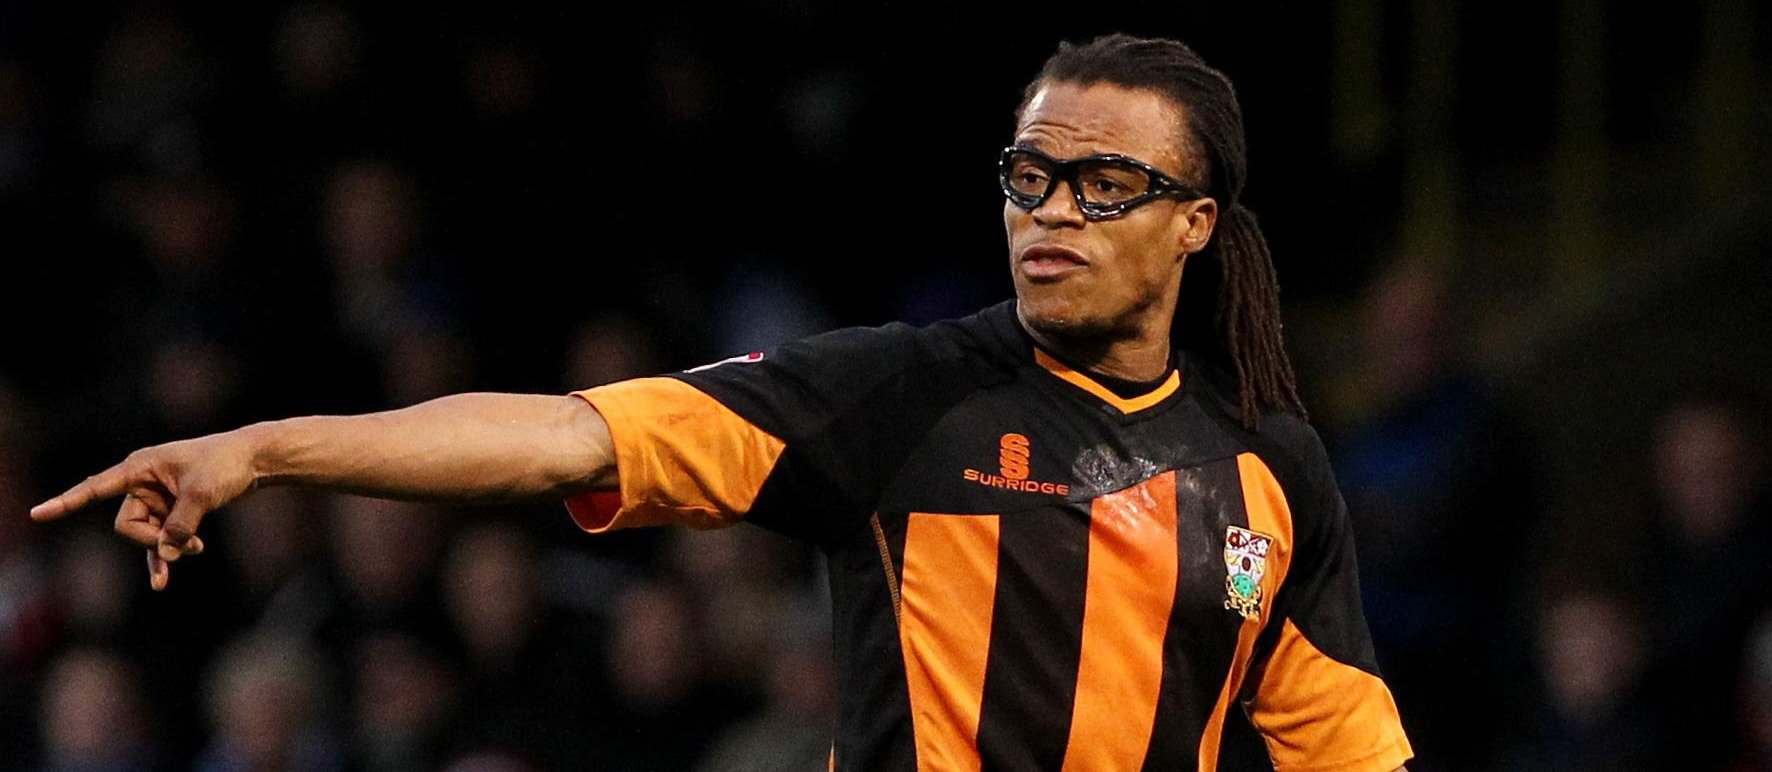 Happy birthday, Edgar Davids!  What a player, LOVED a tackle!